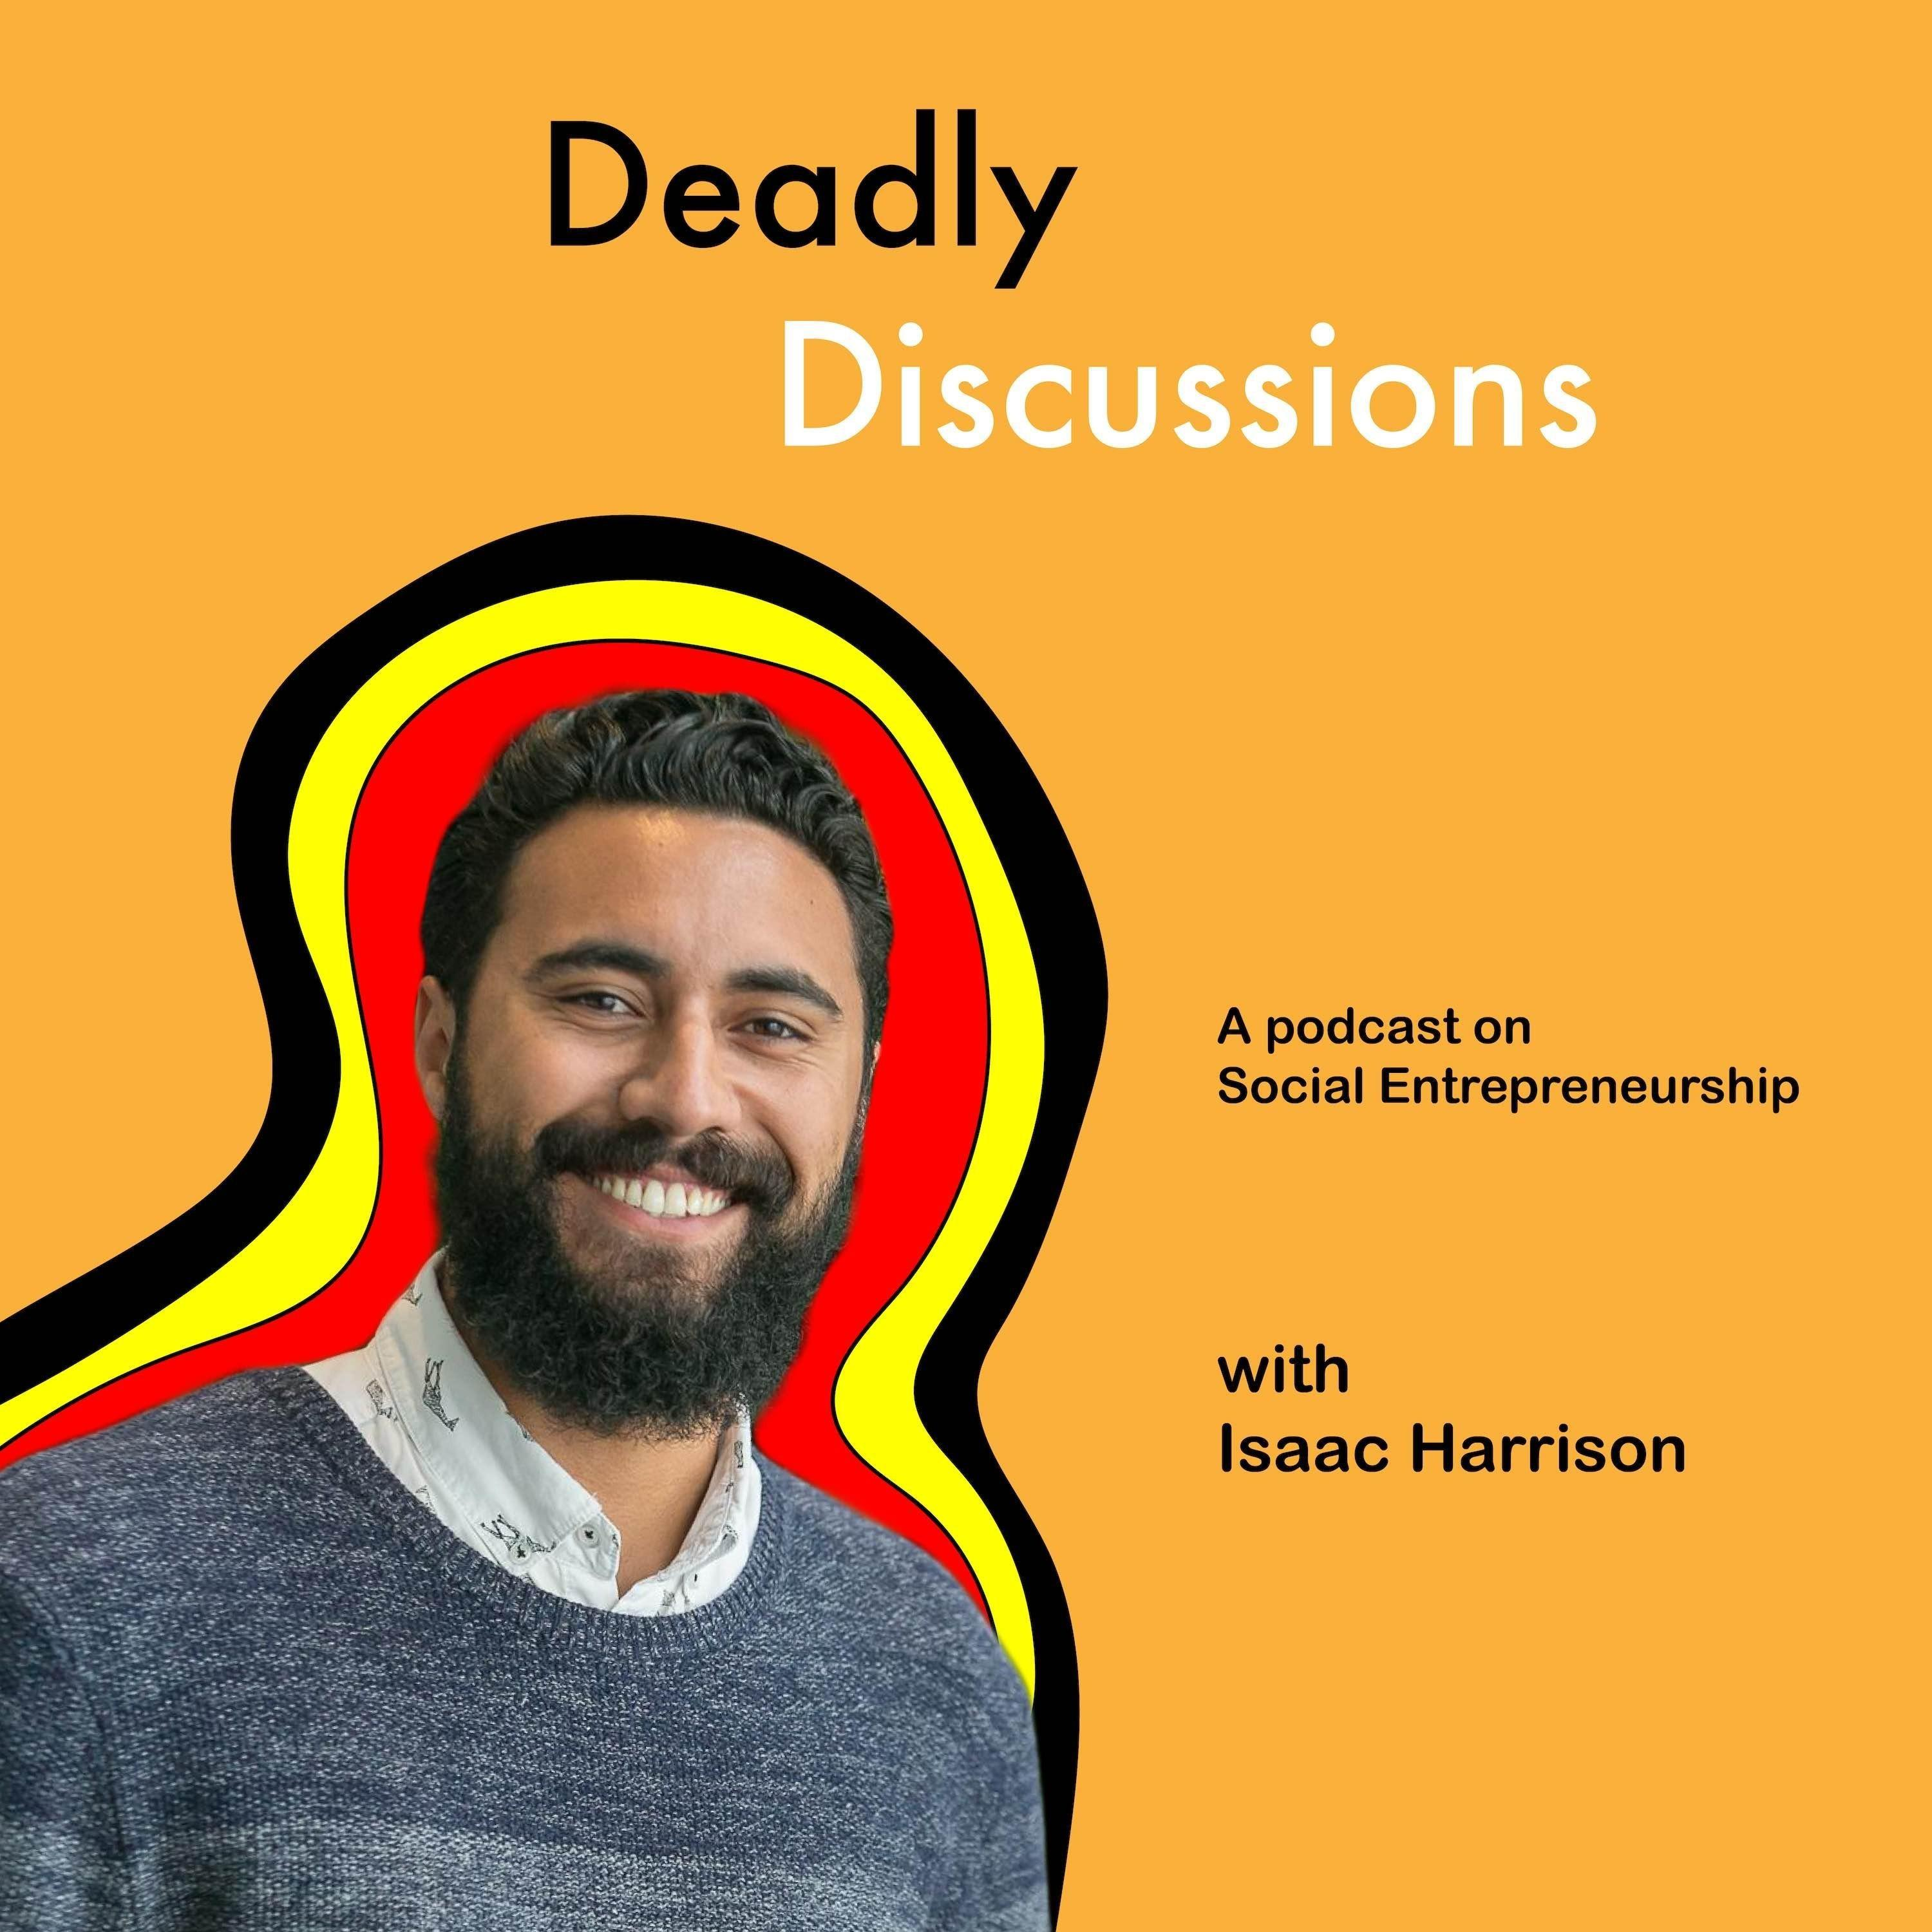 Deadly Discussions Episode 19